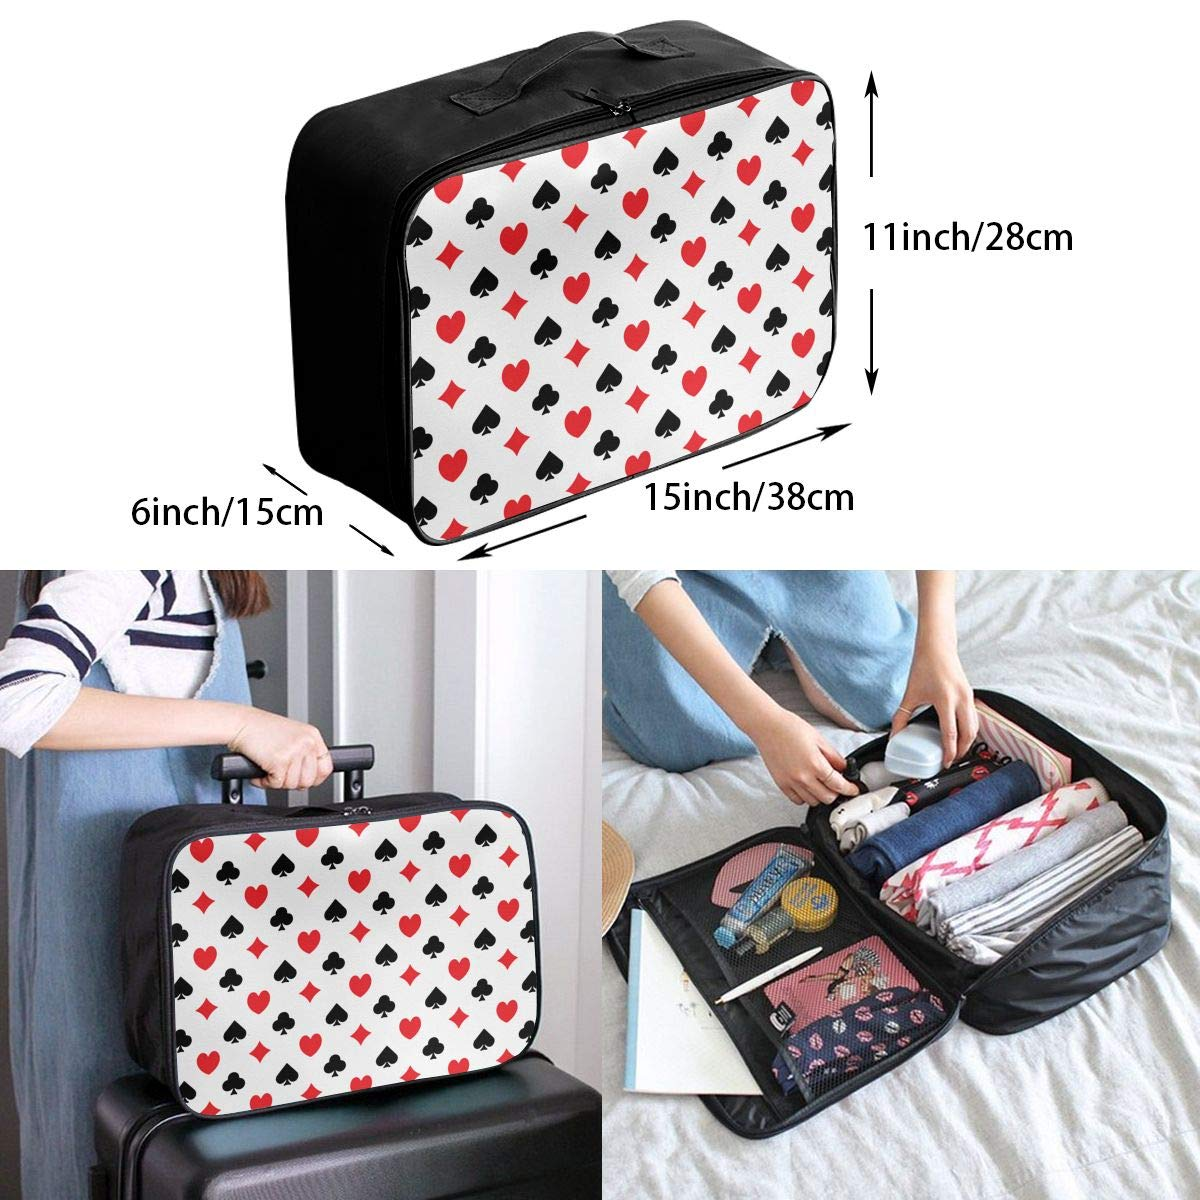 Lightweight Large Capacity Duffel Portable Luggage Bag Casino Poker Pattern Travel Waterproof Foldable Storage Carry Tote Bag